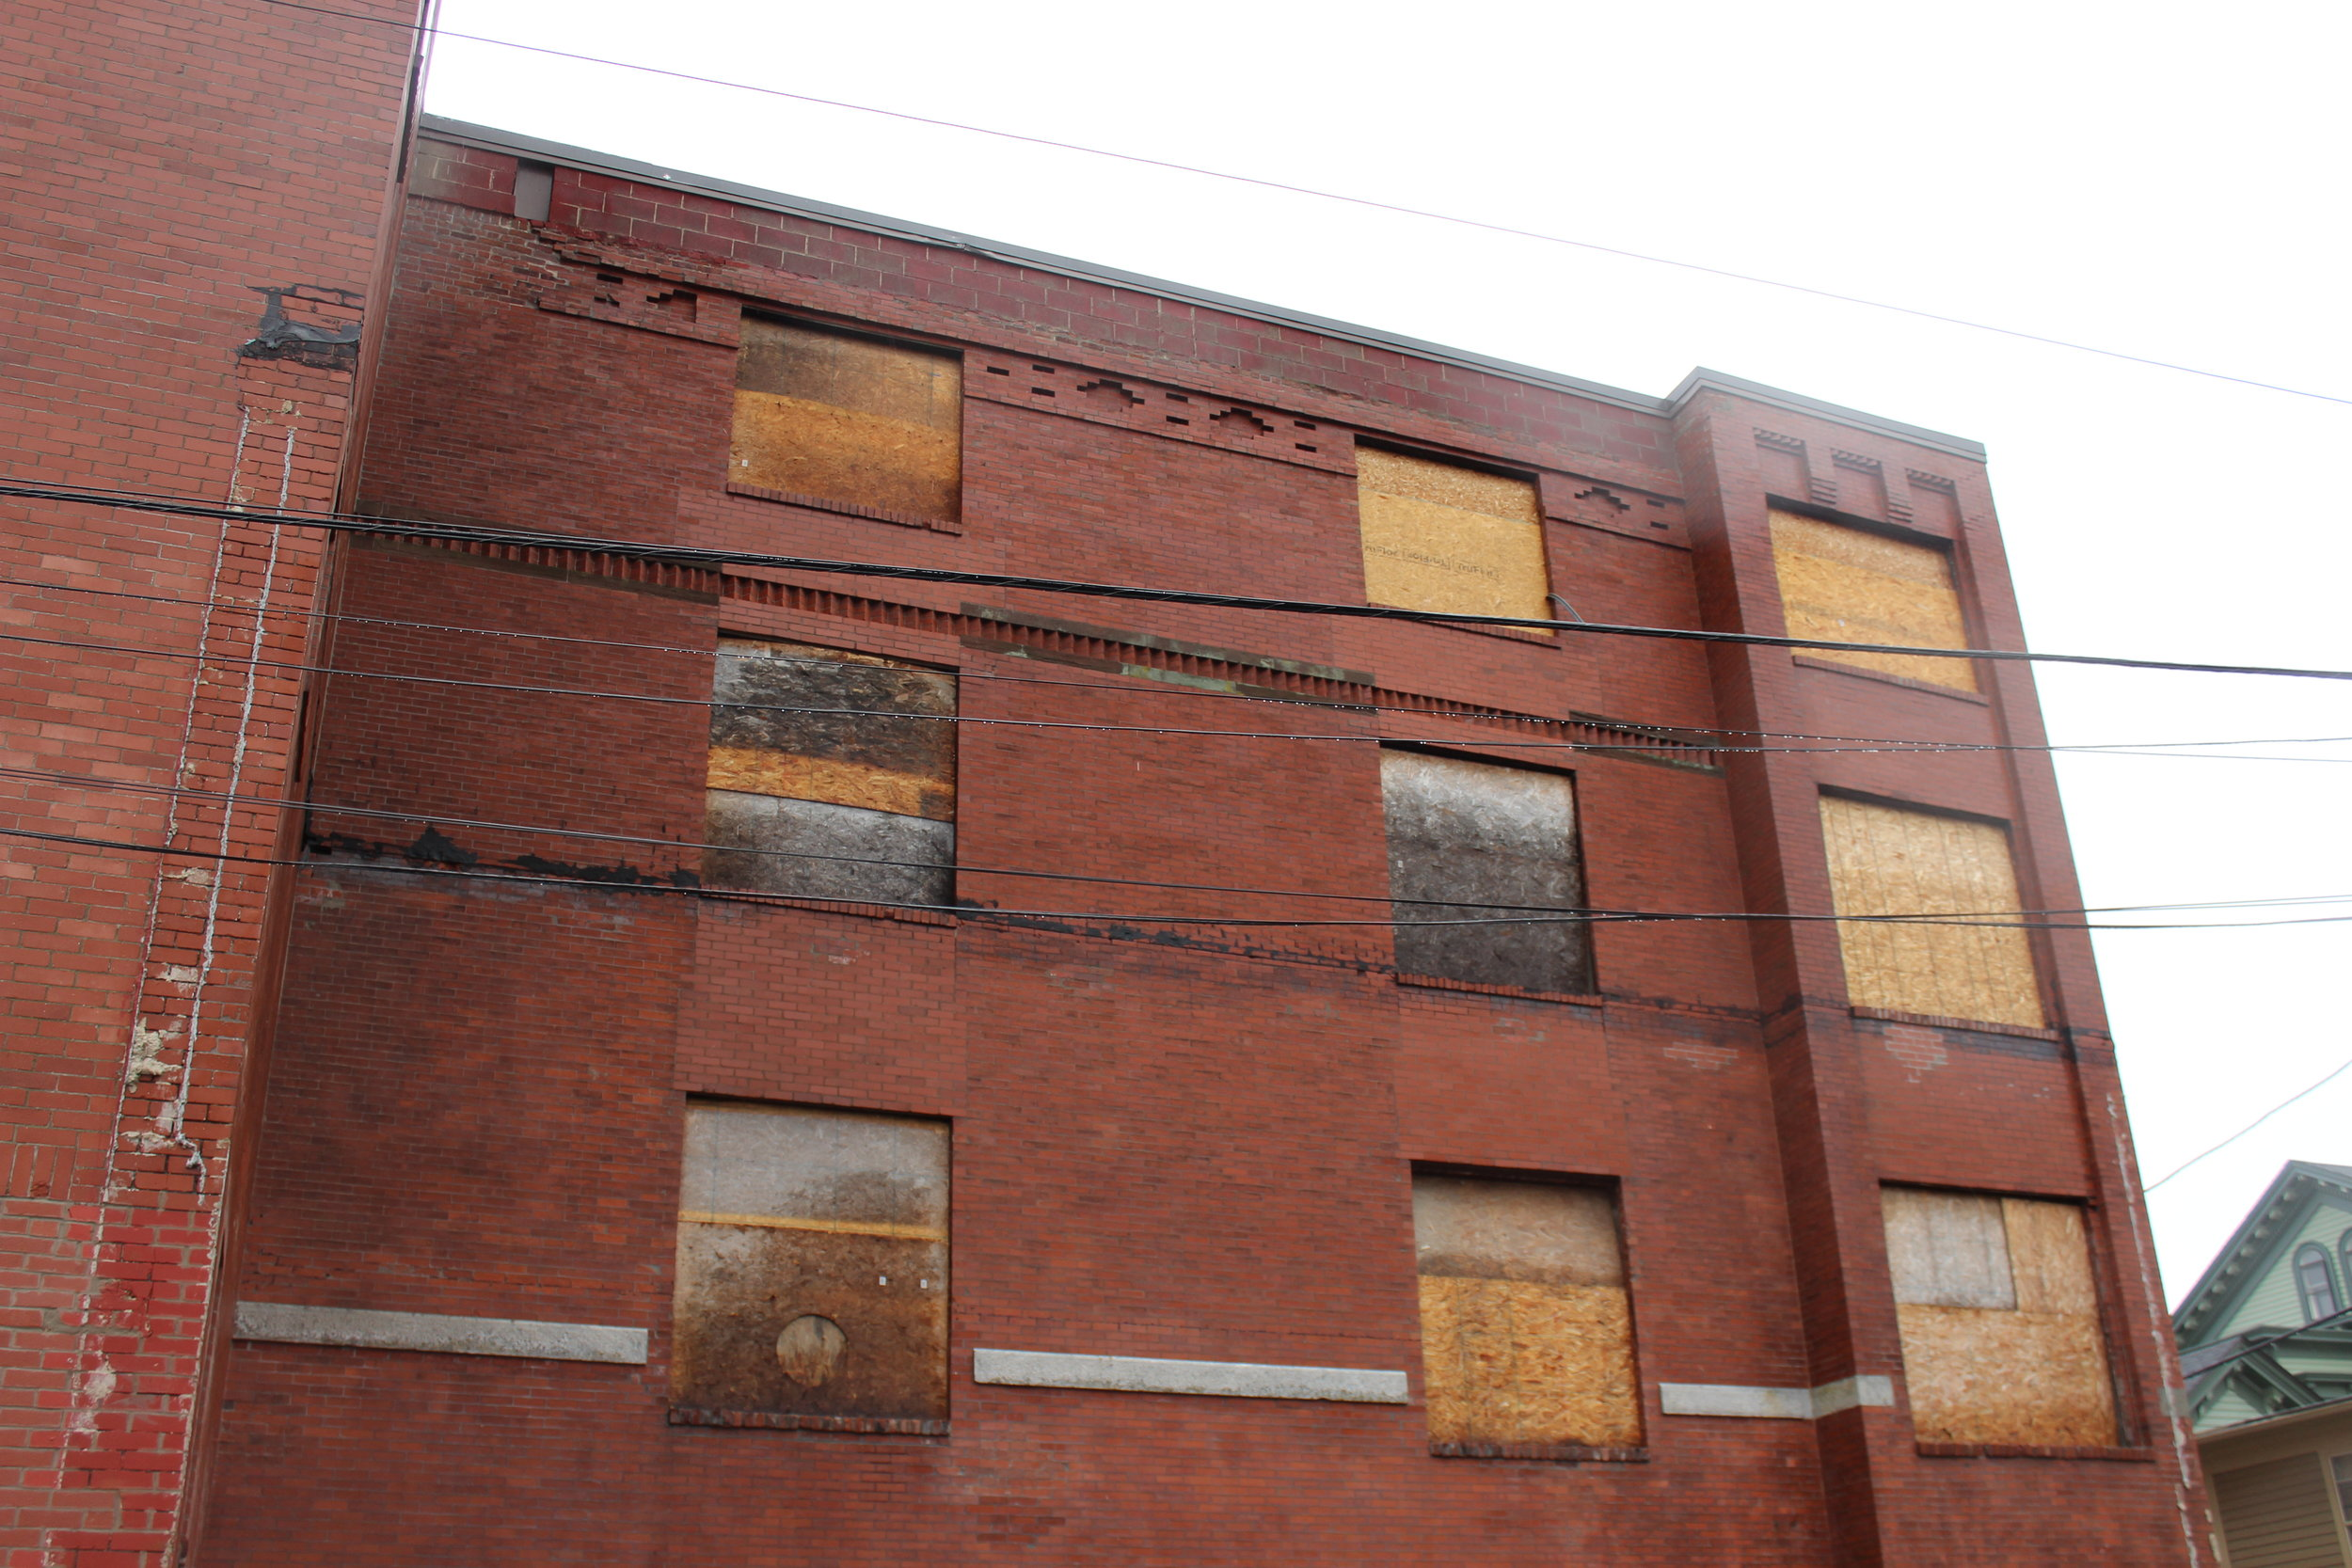 Traces of an addition that had been removed a few years ago from the north elevation (Powhatan Street side)